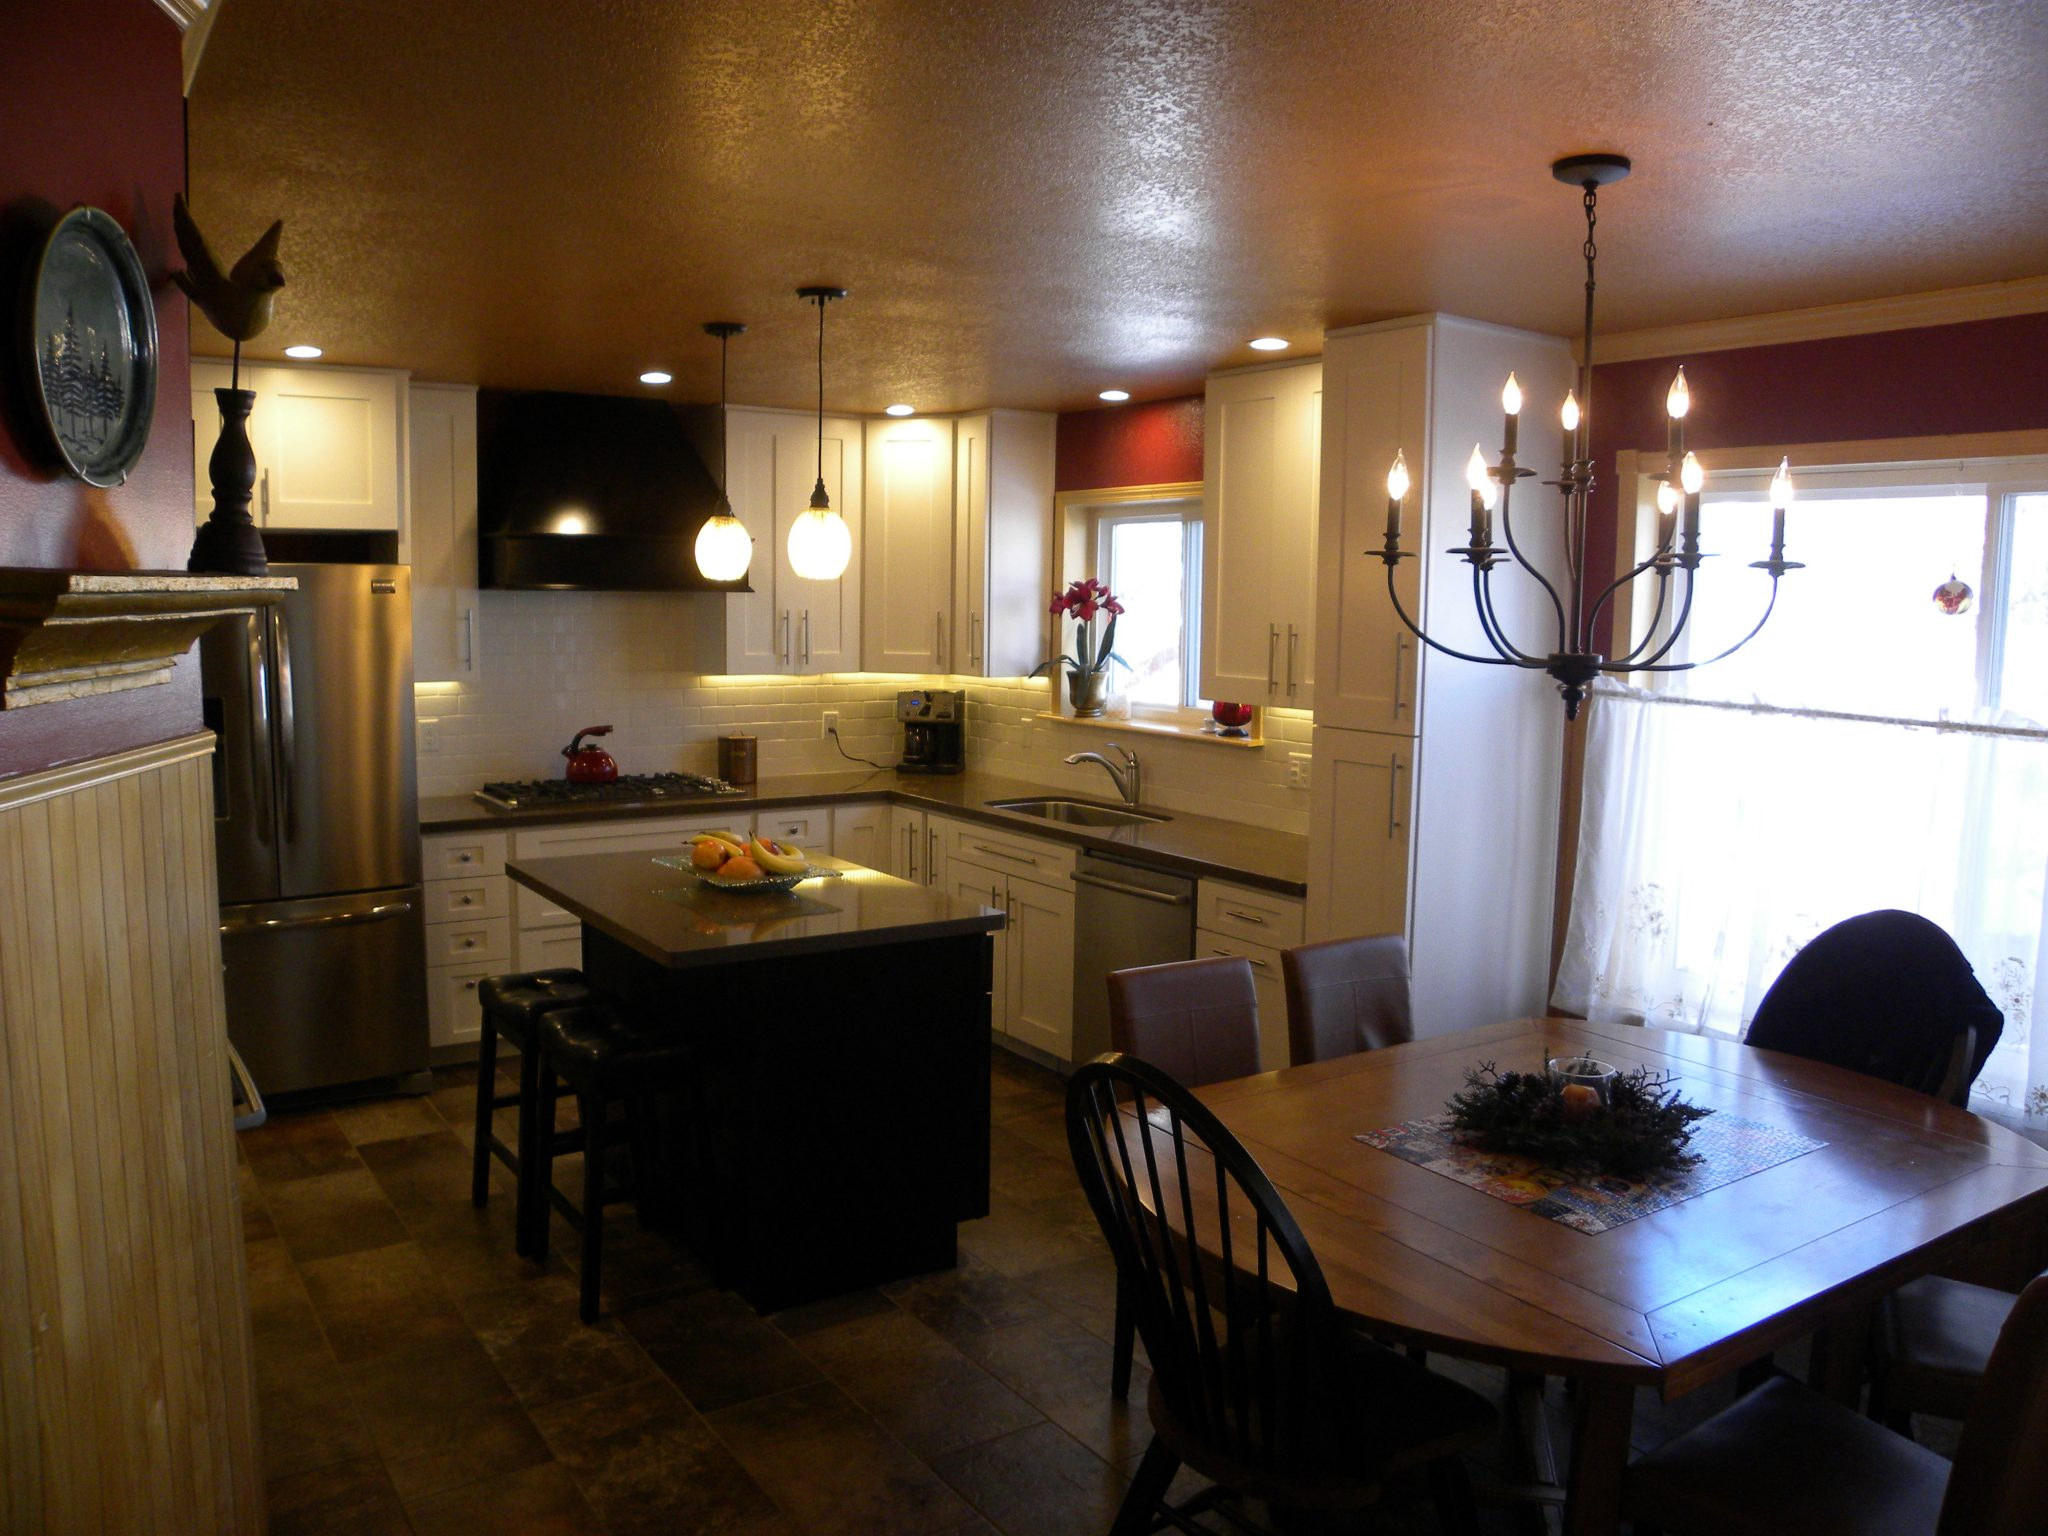 Interior shot of a newly remodeled kitchen with new lighting, granite countertops, and white wooden cabinets